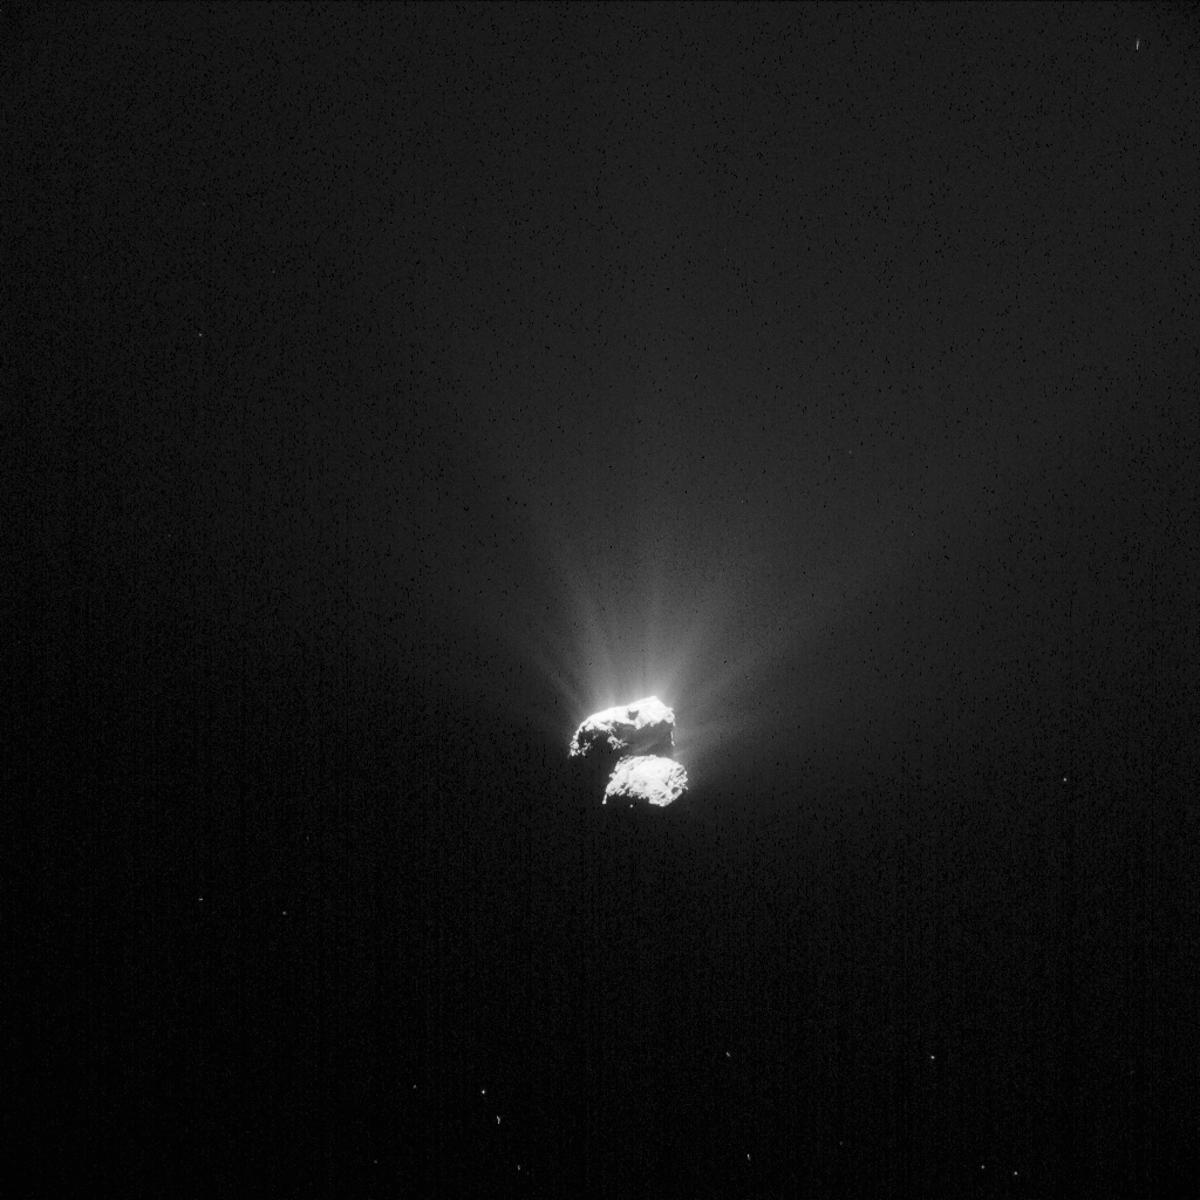 The southern hemisphere of Comet 67P/C-G in a NAVCAM image taken on August 26, 2015